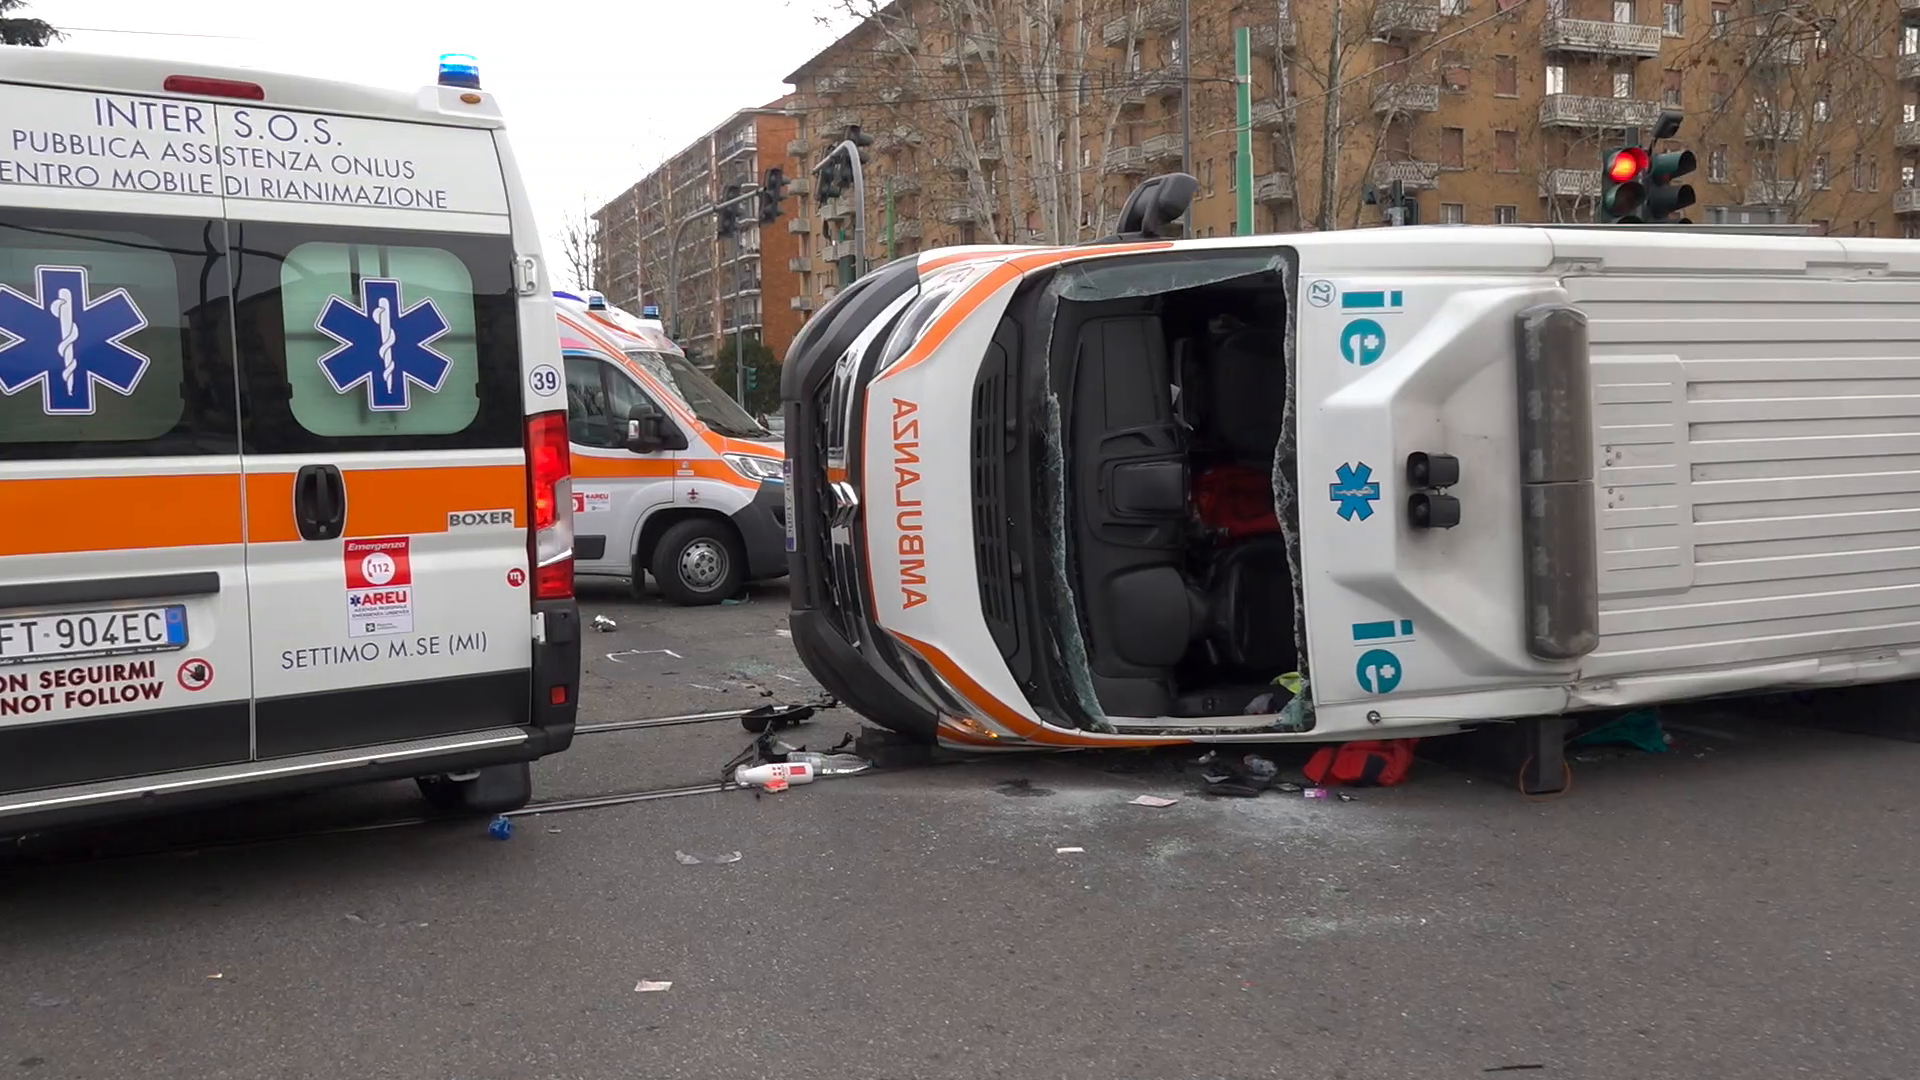 66aec5e770 Milano, si ribalta ambulanza: incidente in viale Fulvio Testi - Local Team